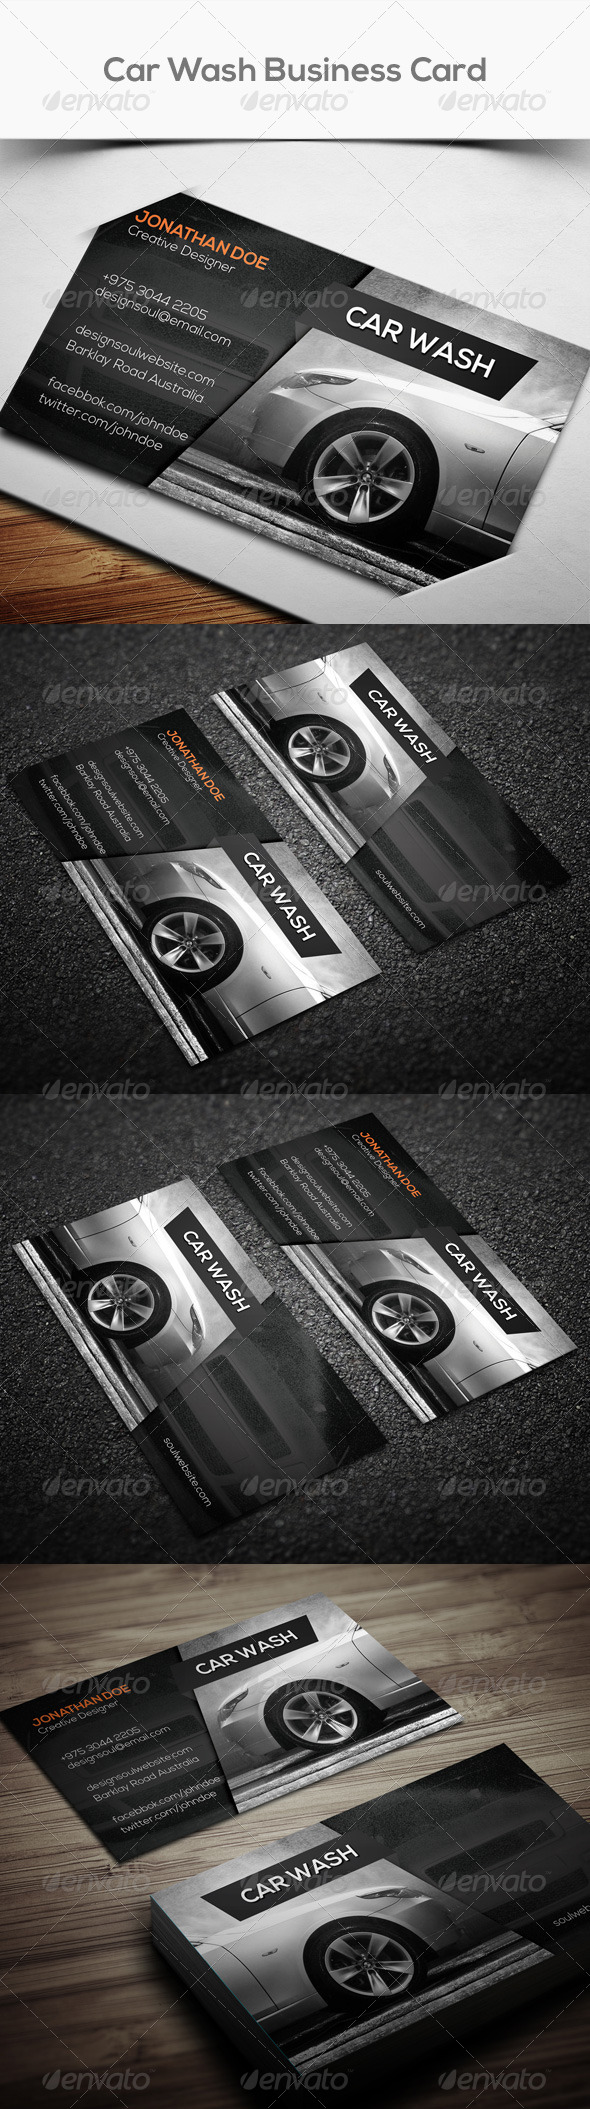 GraphicRiver Car Wash Business Card 7675829